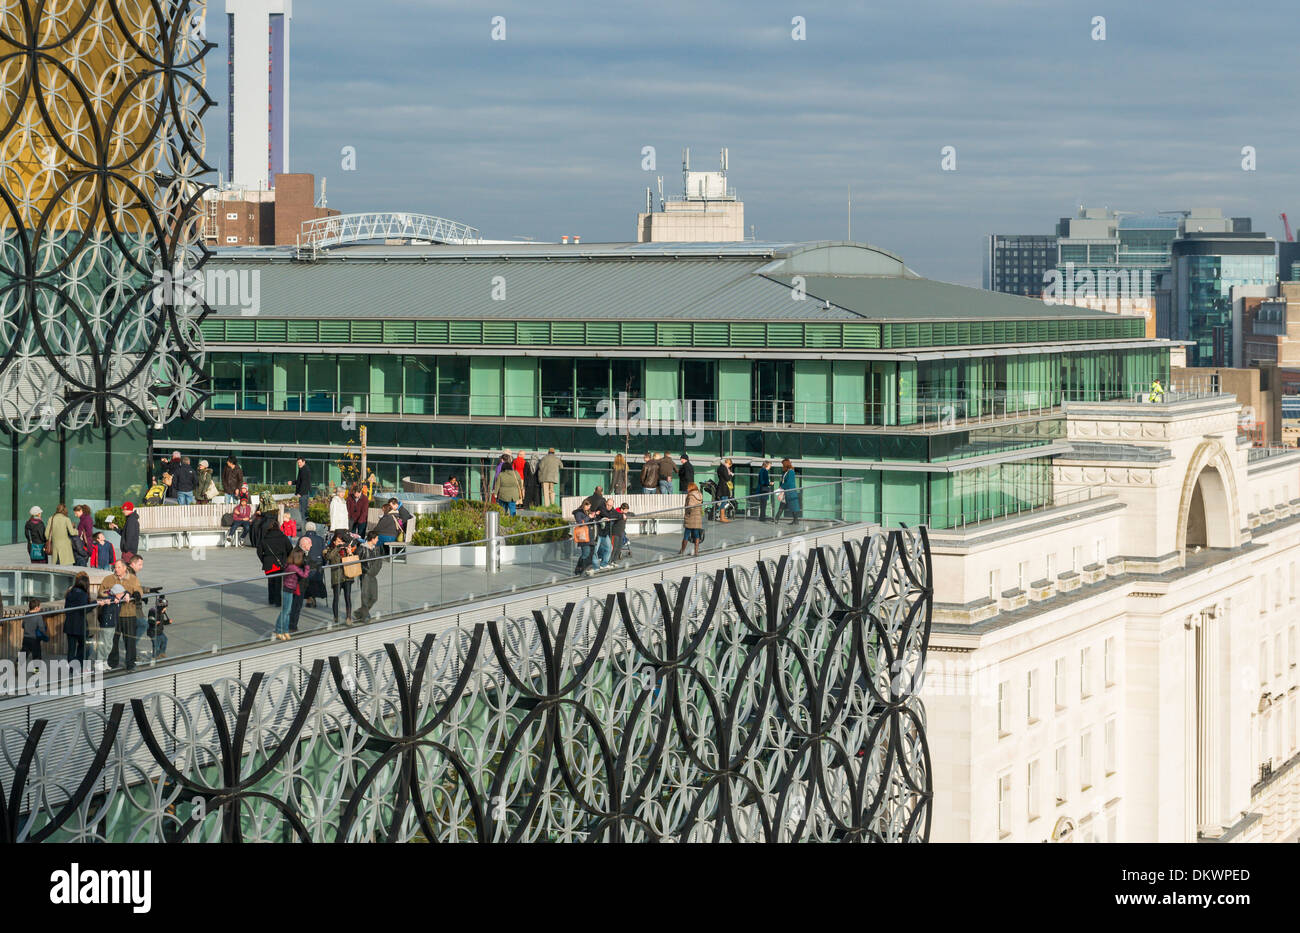 The terrace at the new Library of Birmingham, England. - Stock Image